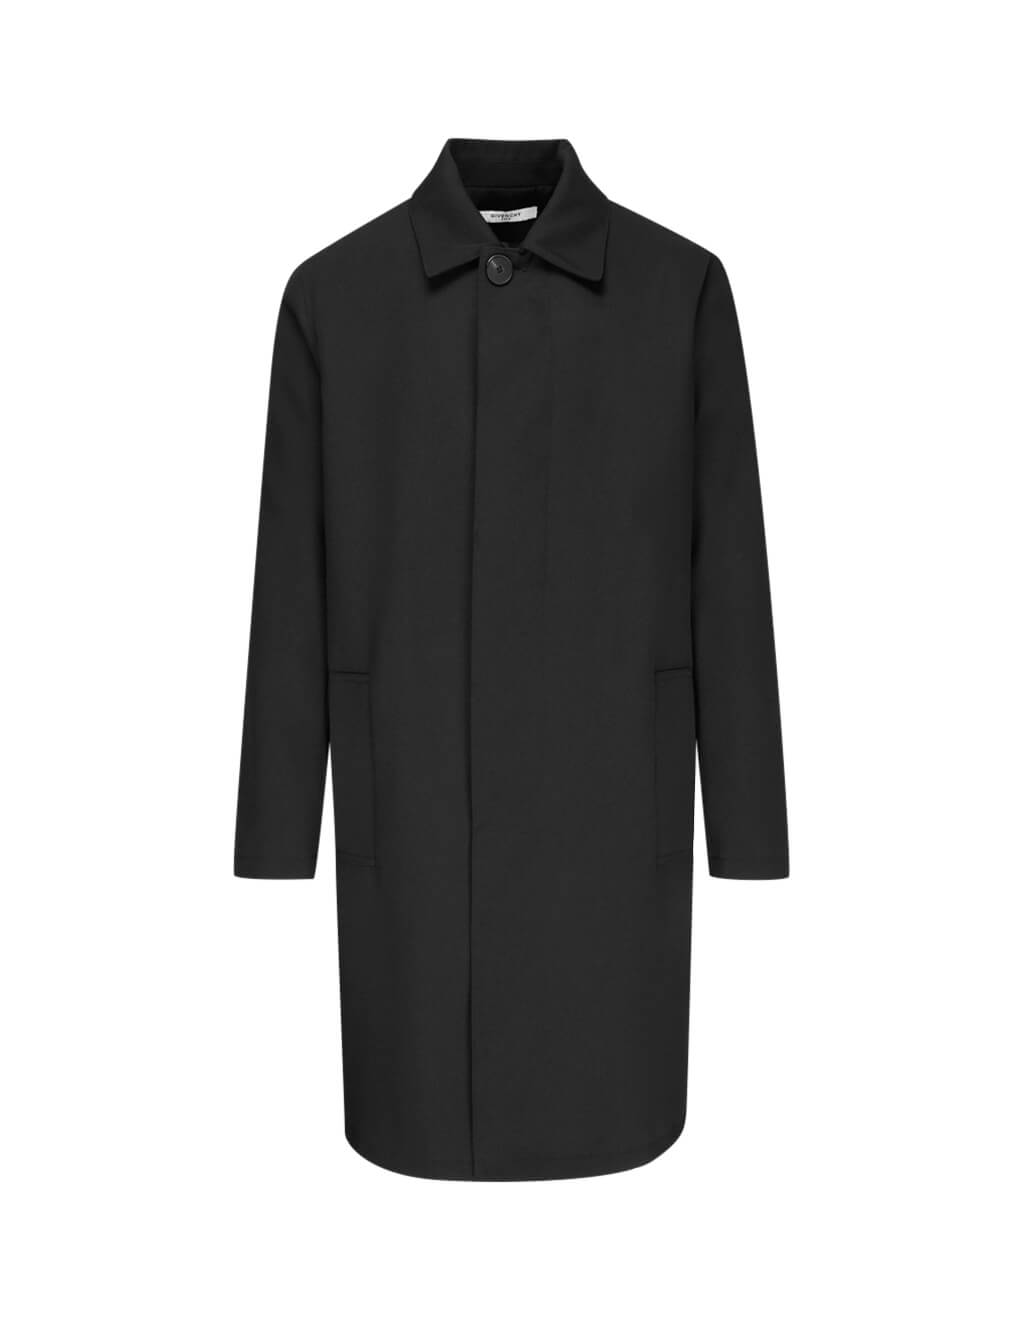 Givenchy Men's Black Atelier Print Wool Coat Bm00Cj124N001